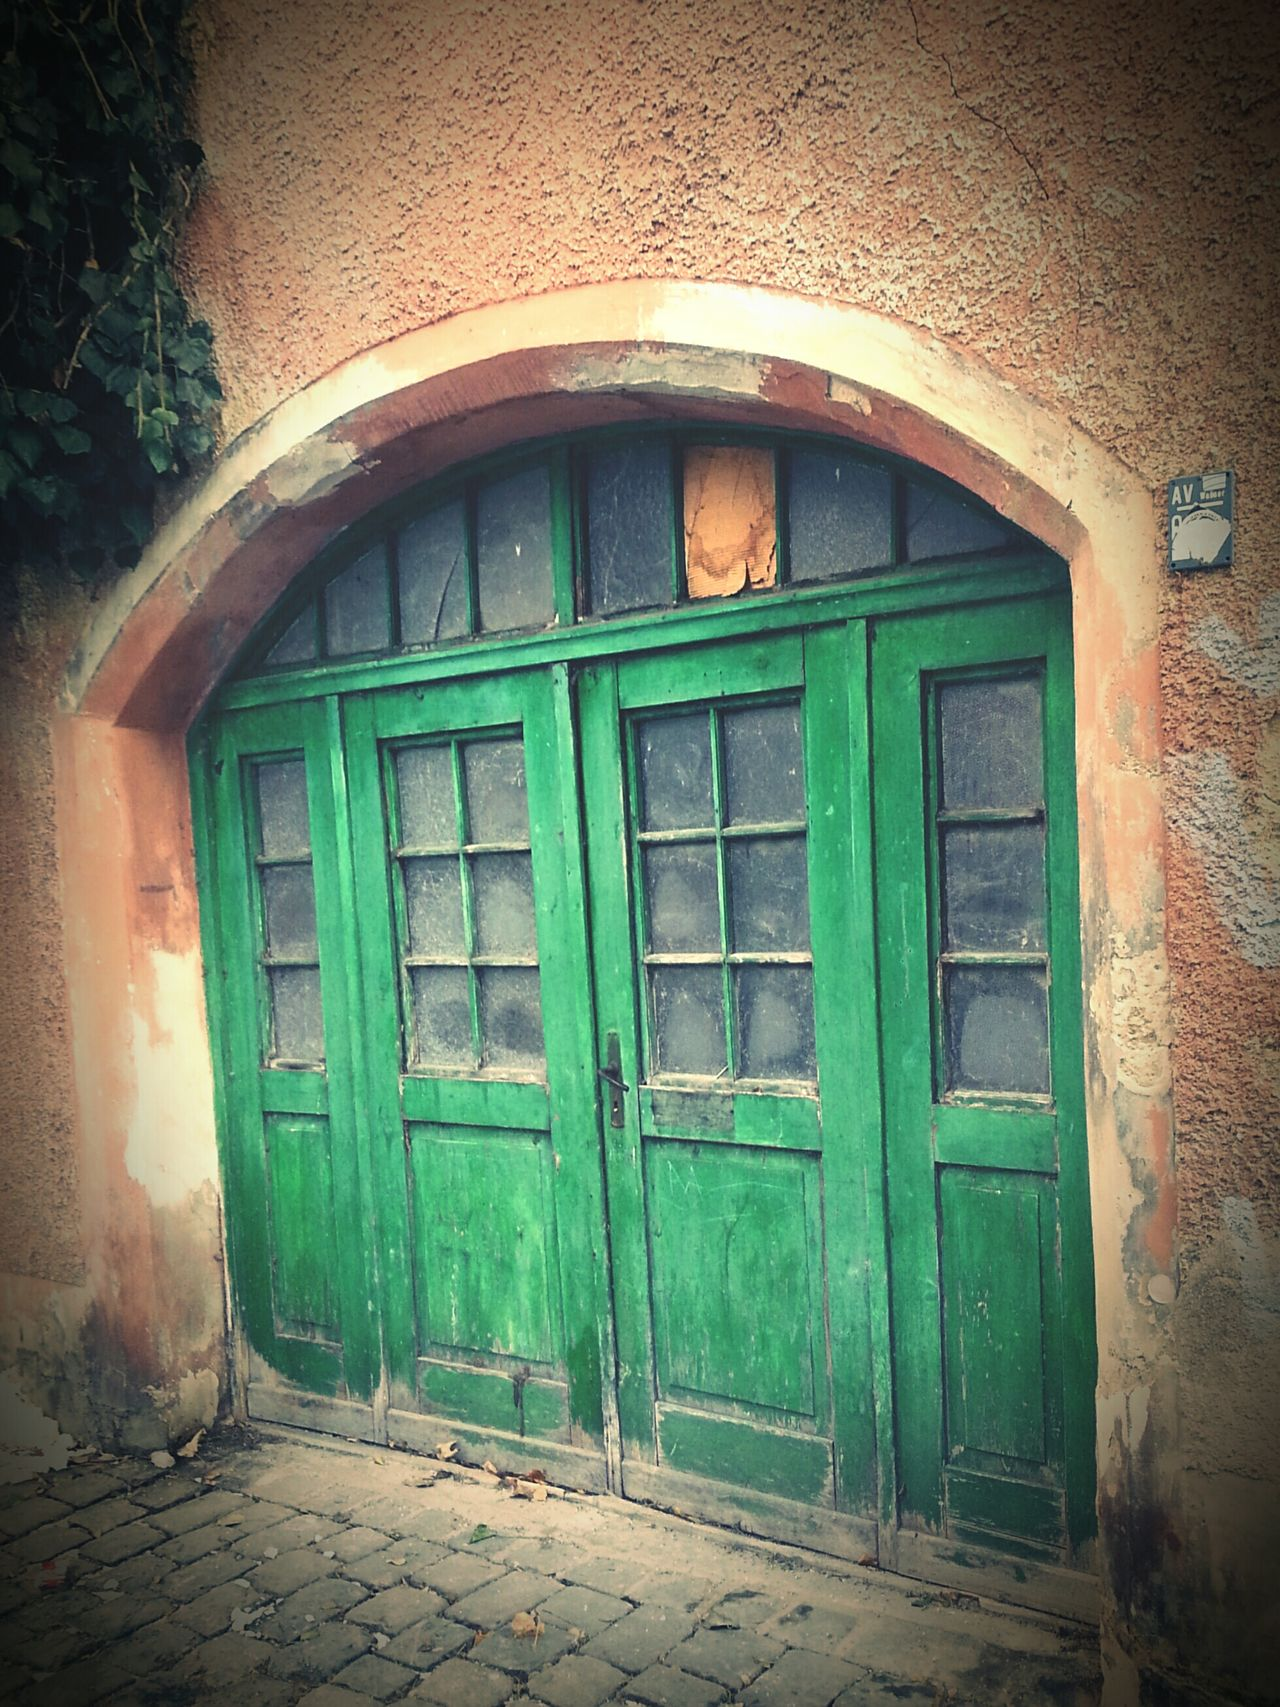 Green Door Door Architecture Building Exterior Closed Built Structure Entrance Window Outdoors Doorway No People House Day Front Door Entry Ajar Augsburg Vintage EyeEmNewHere Architecture Oldschool Green Pastel Broken Glass Let's Do It Chic!